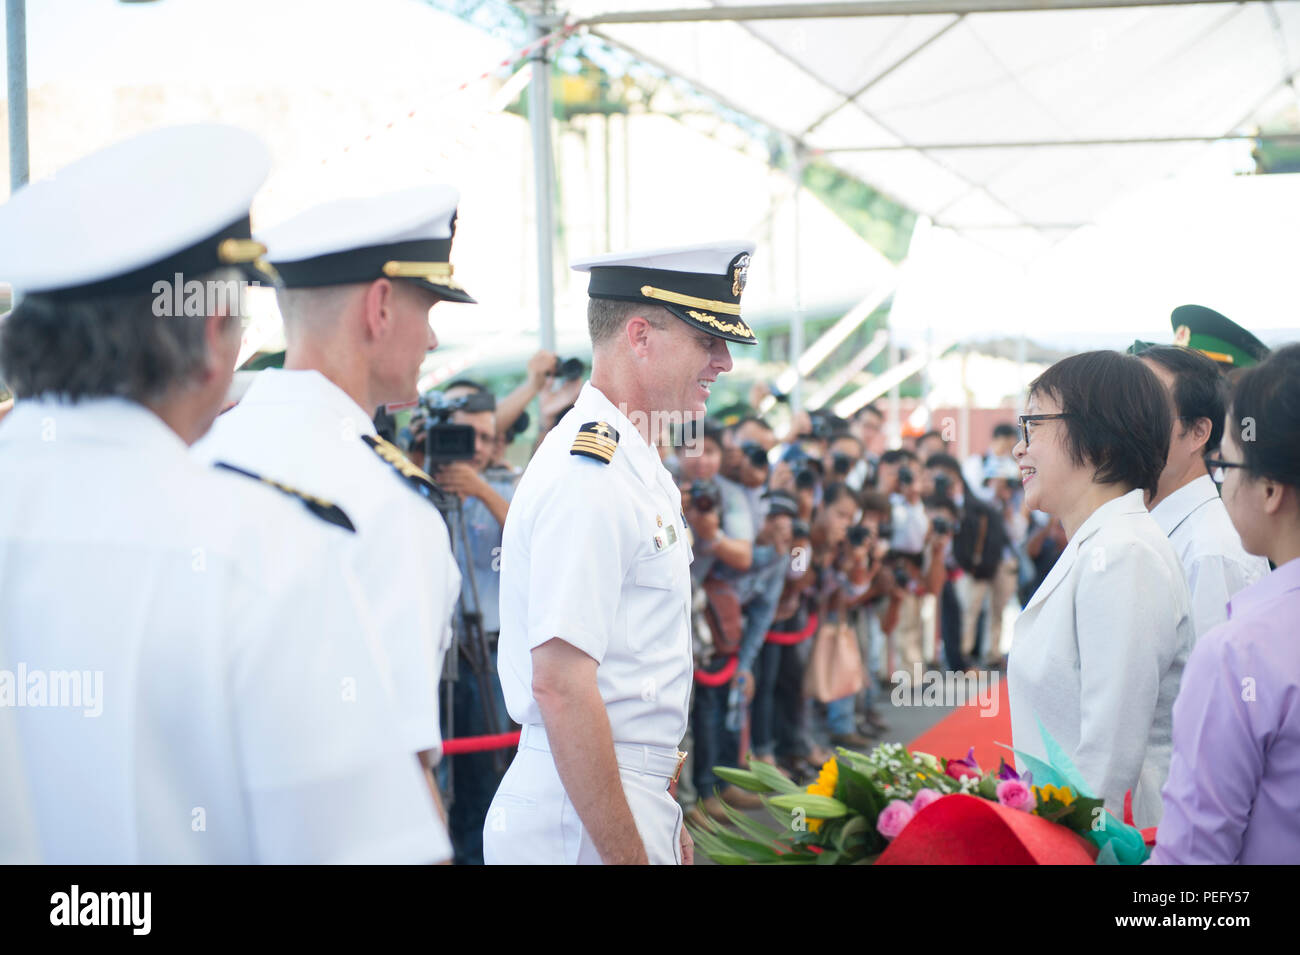 150817-N-MK341-027 DA NANG, Vietnam (Aug.t 17, 2015) – Commodore, Pacific Partnership Capt. Chris Engdahl greets a representative from the De Nang People's Committee Aug.t 17.  Vietnam is the fifth stop for the Military Sealift Command joint high speed vessel USNS Millinocket (JHSV 3) and embarked Task Force Forager. Millinocket and embarked Task Force Forager are serving as the secondary platform for Pacific Partnership, led by an expeditionary command element from the Navy's 30th Naval Construction Regiment (30 NCR) from Port Hueneme, Calif. Now in its 10th iteration, Pacific Partnership is  - Stock Image